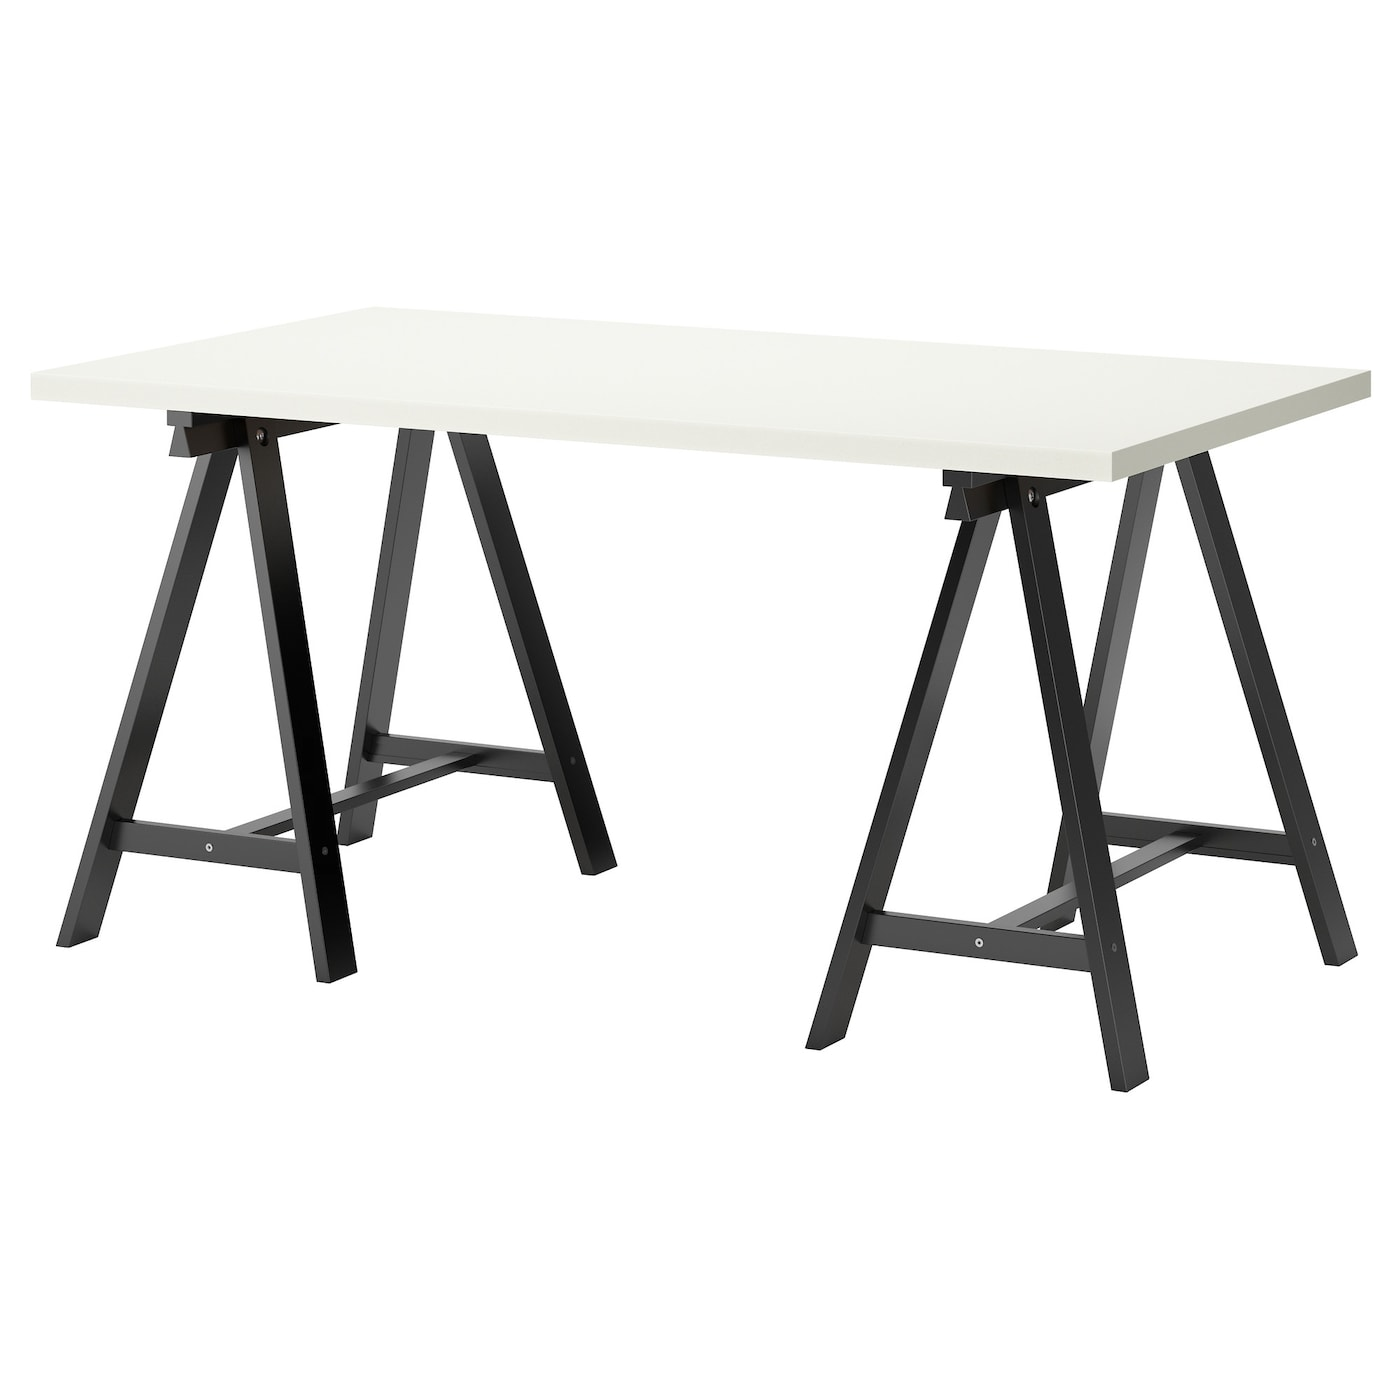 oddvald linnmon table white black 150 x 75 cm ikea. Black Bedroom Furniture Sets. Home Design Ideas